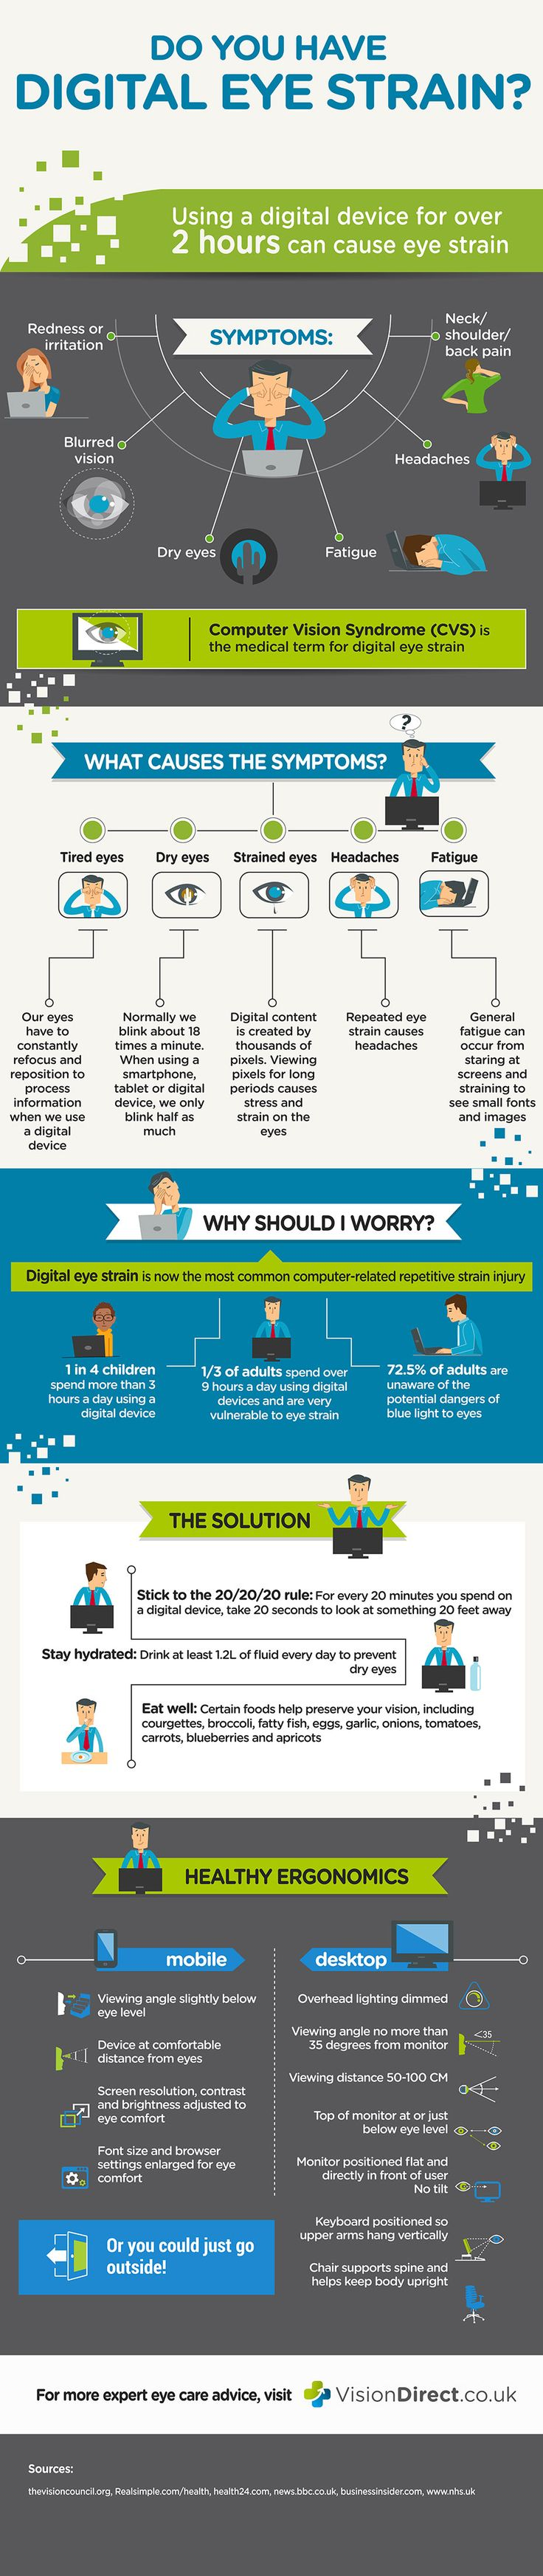 Do you have digital eye strain? #Eyestrain #eyes #infographic #health